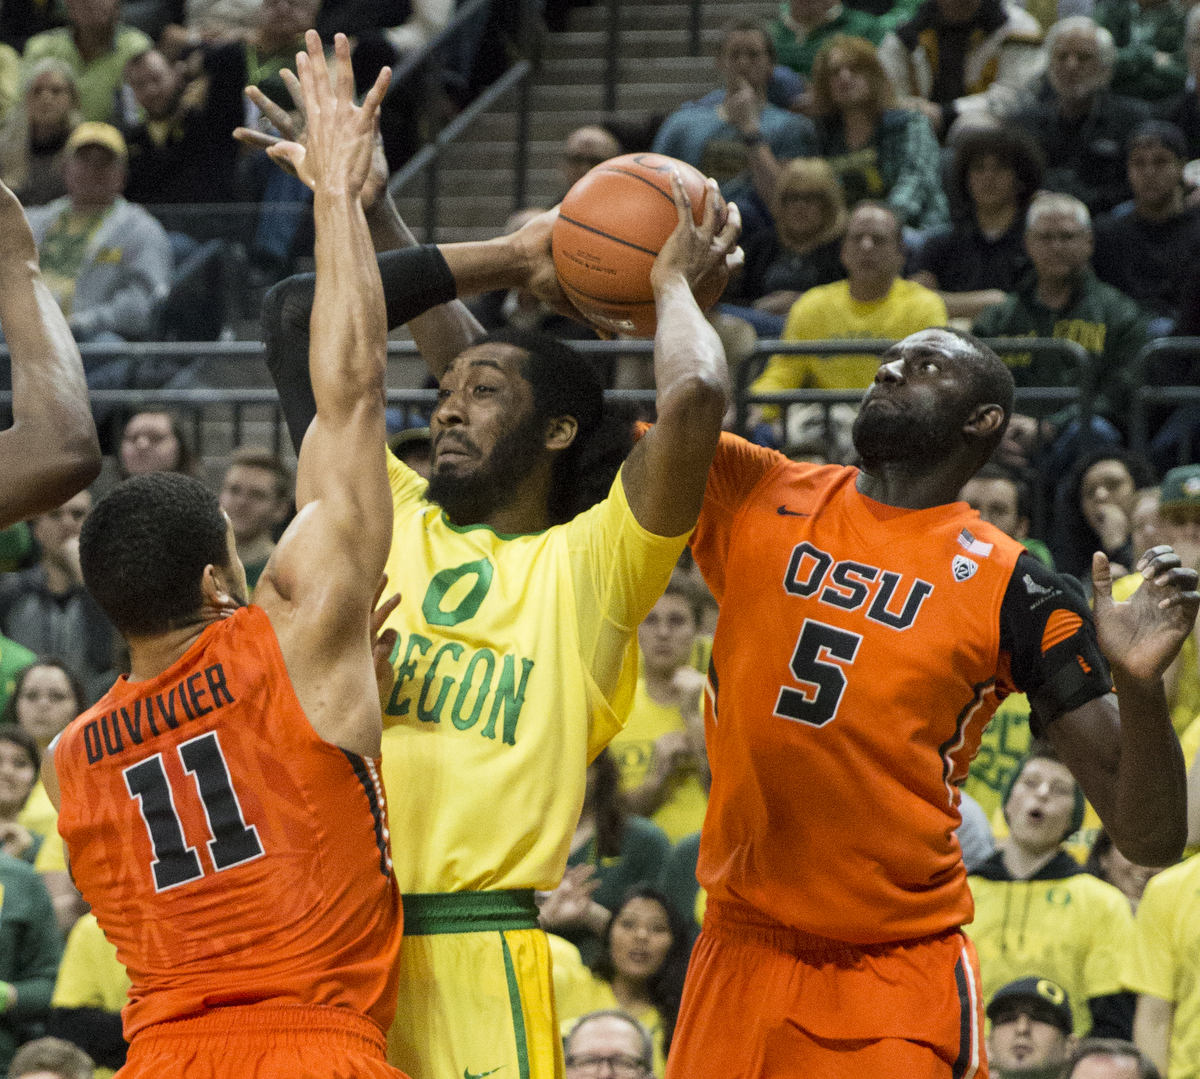 Oregon State's Cheikh N'diane (5) looks to swat the ball away from Oregon's Dwayne Benjamin (0) as he gets defensive help from Malcolm Duvivier (11). After opening up a huge lead in the first half, the Ducks breezed to a 91-81 win over Oregon State on Saturday night in front of a sold out crowd at Matthew Knight Arena. With the victory, the Ducks advance to 21-6 on the year and 9-4 in conference play. Eric Cech, Oregon News Lab